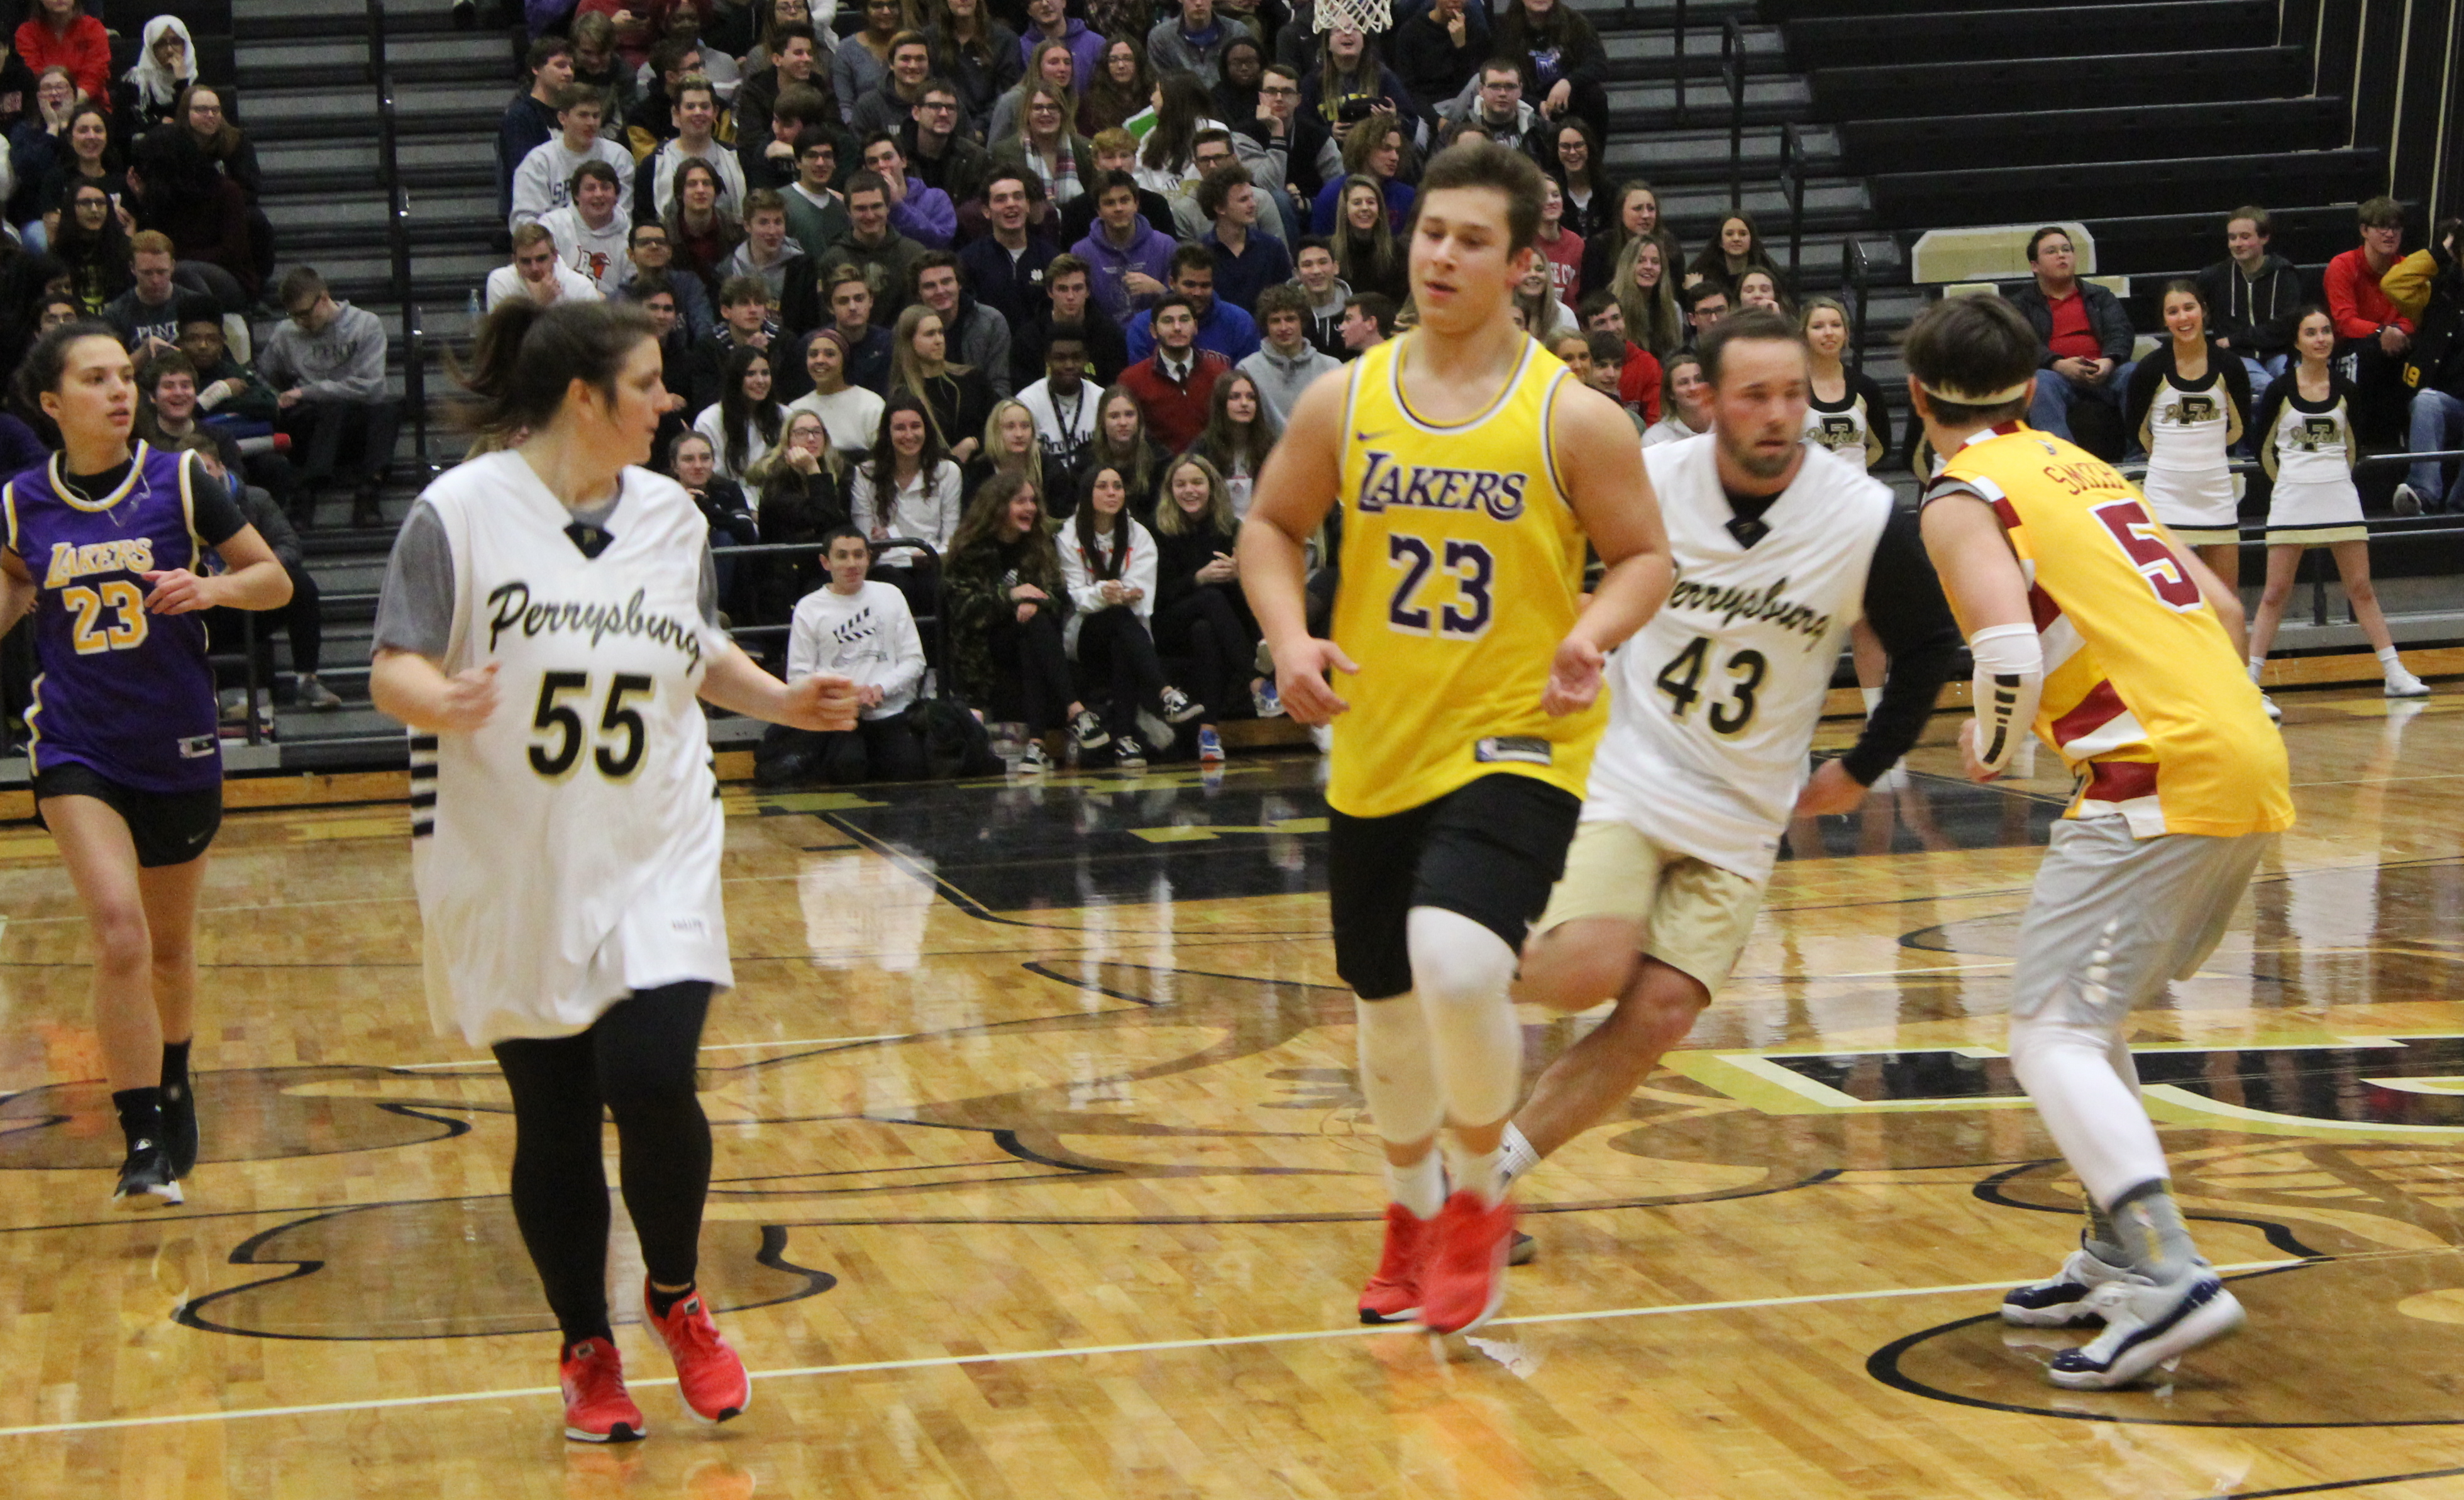 Annual Seniors vs. Teachers Basketball Game a Slam Dunk